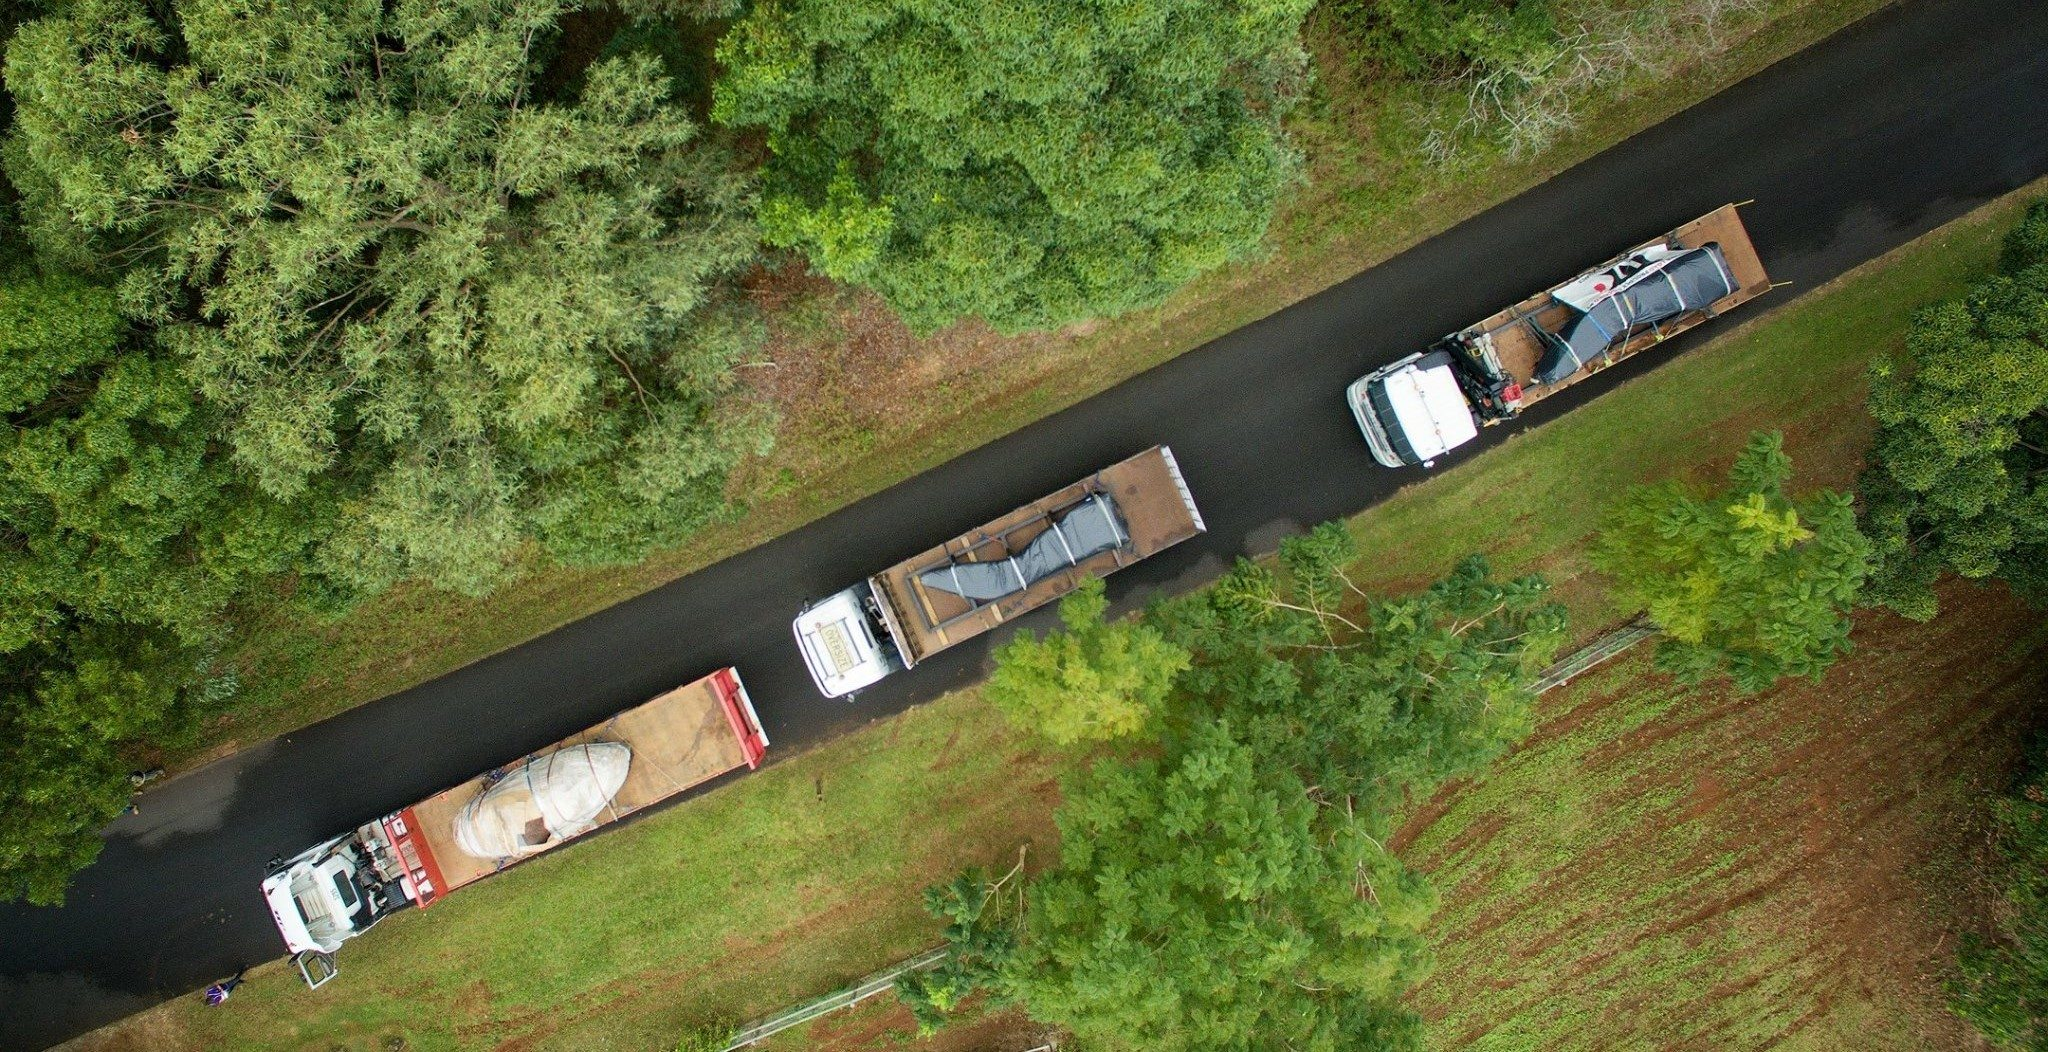 Aerial shot of trailer running on the road